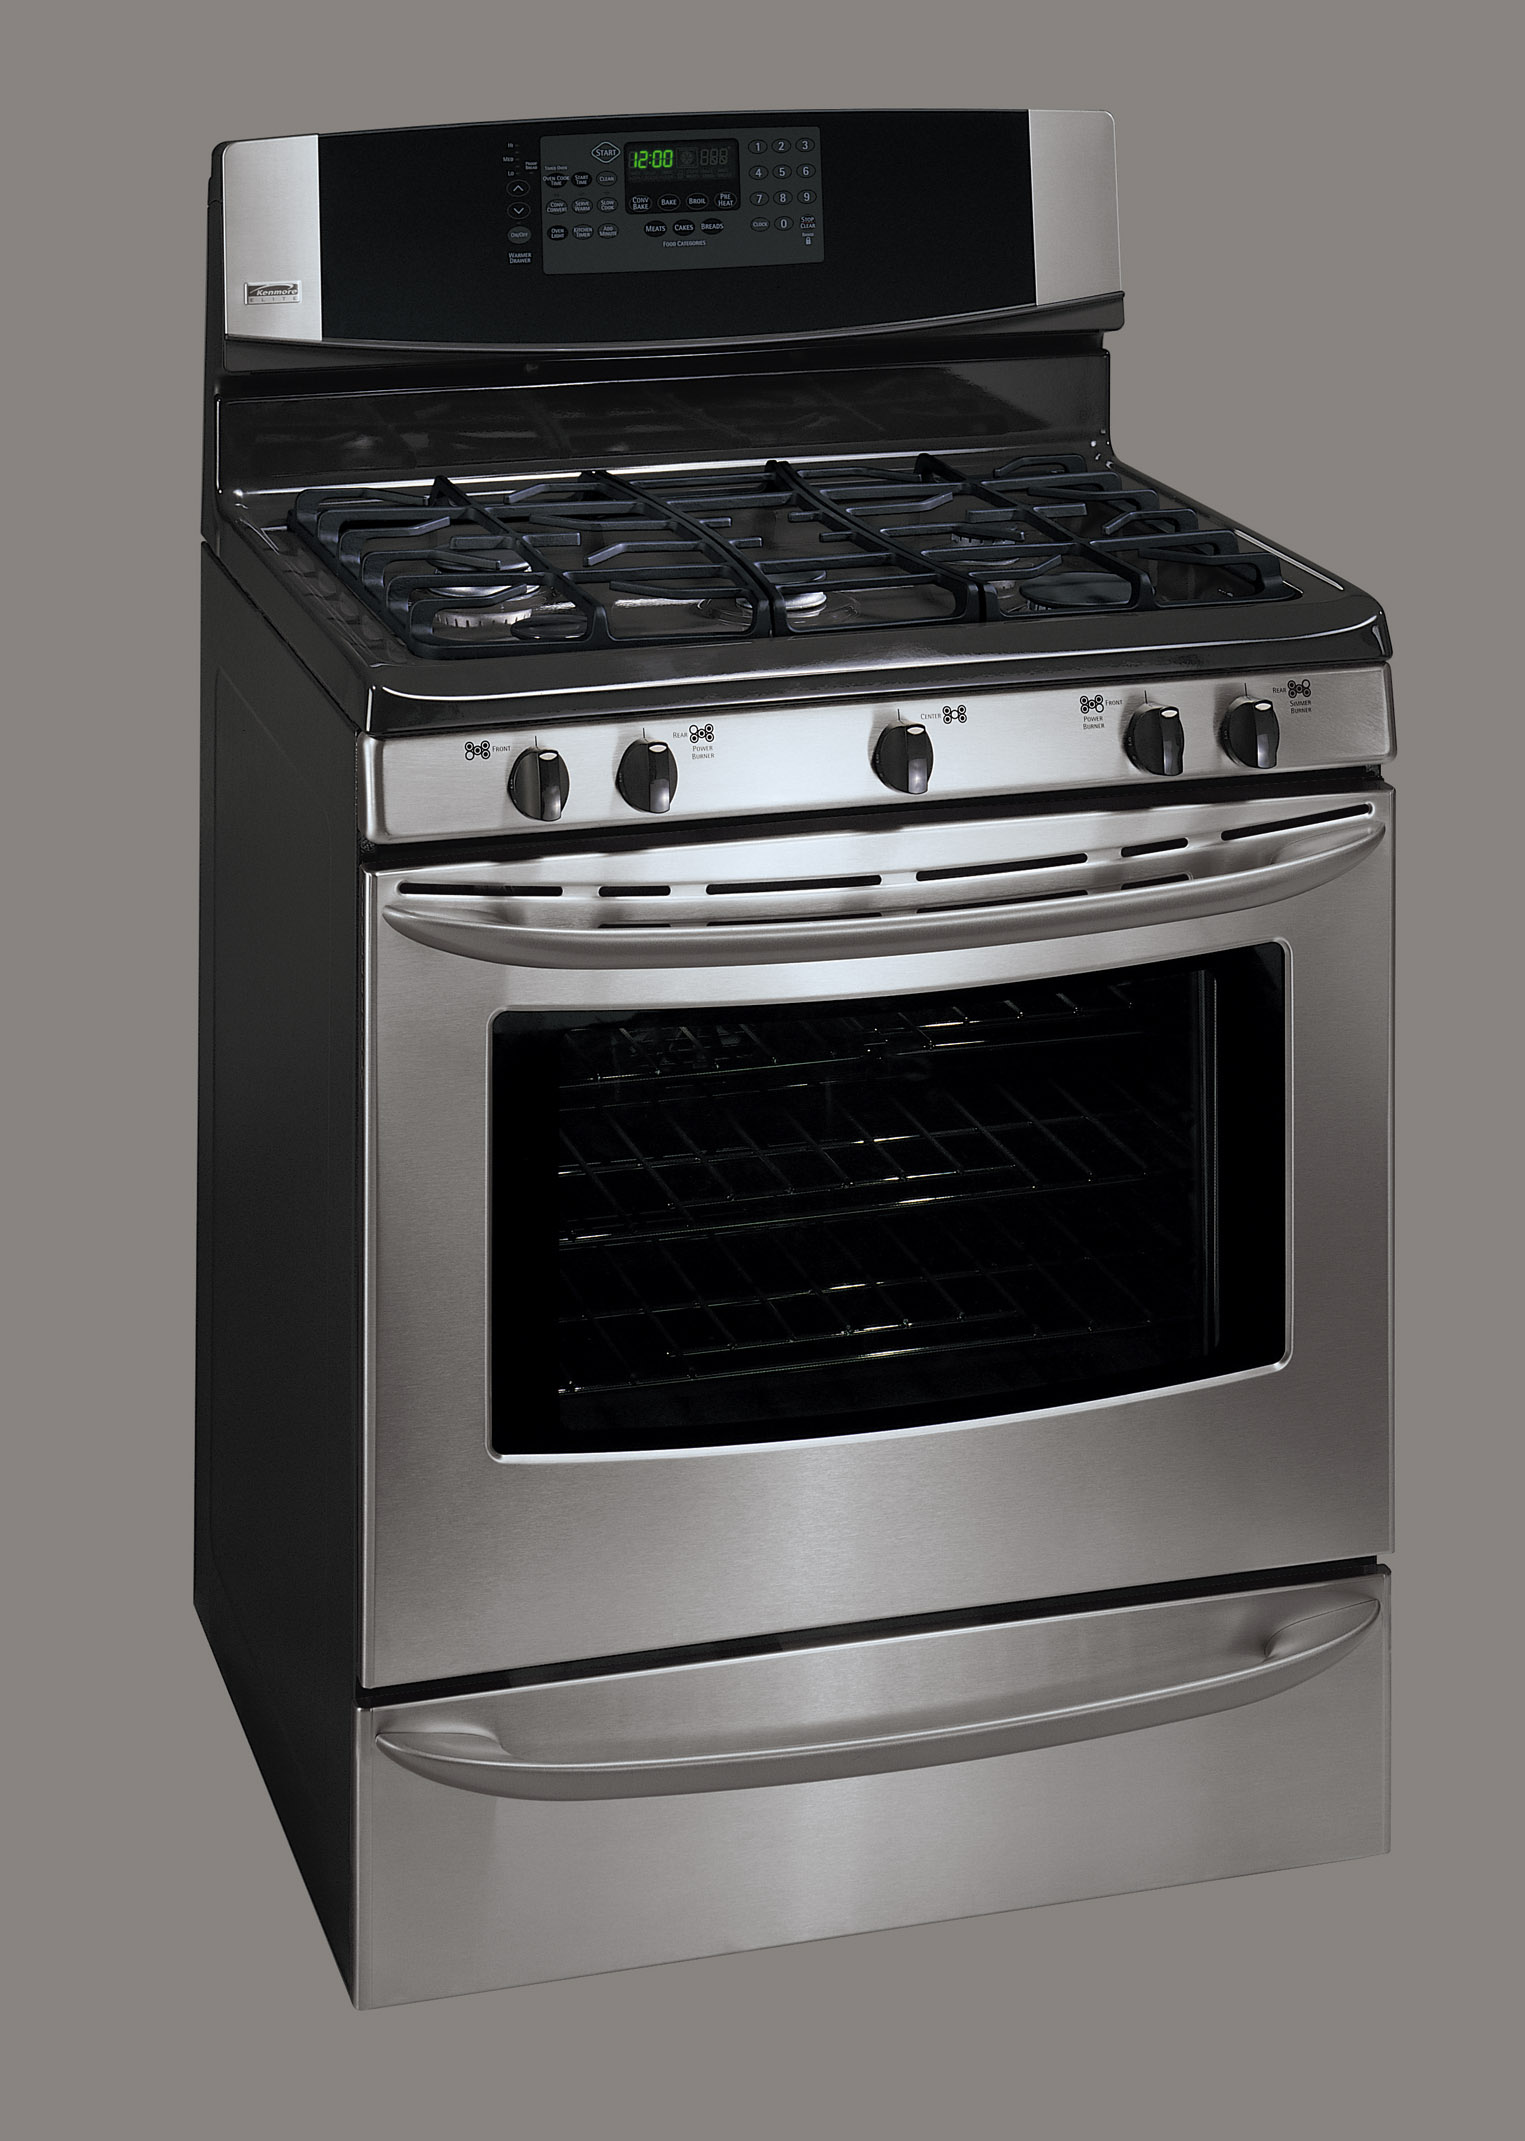 Kenmore Range/Stove/Oven Model 790.79363406 Parts